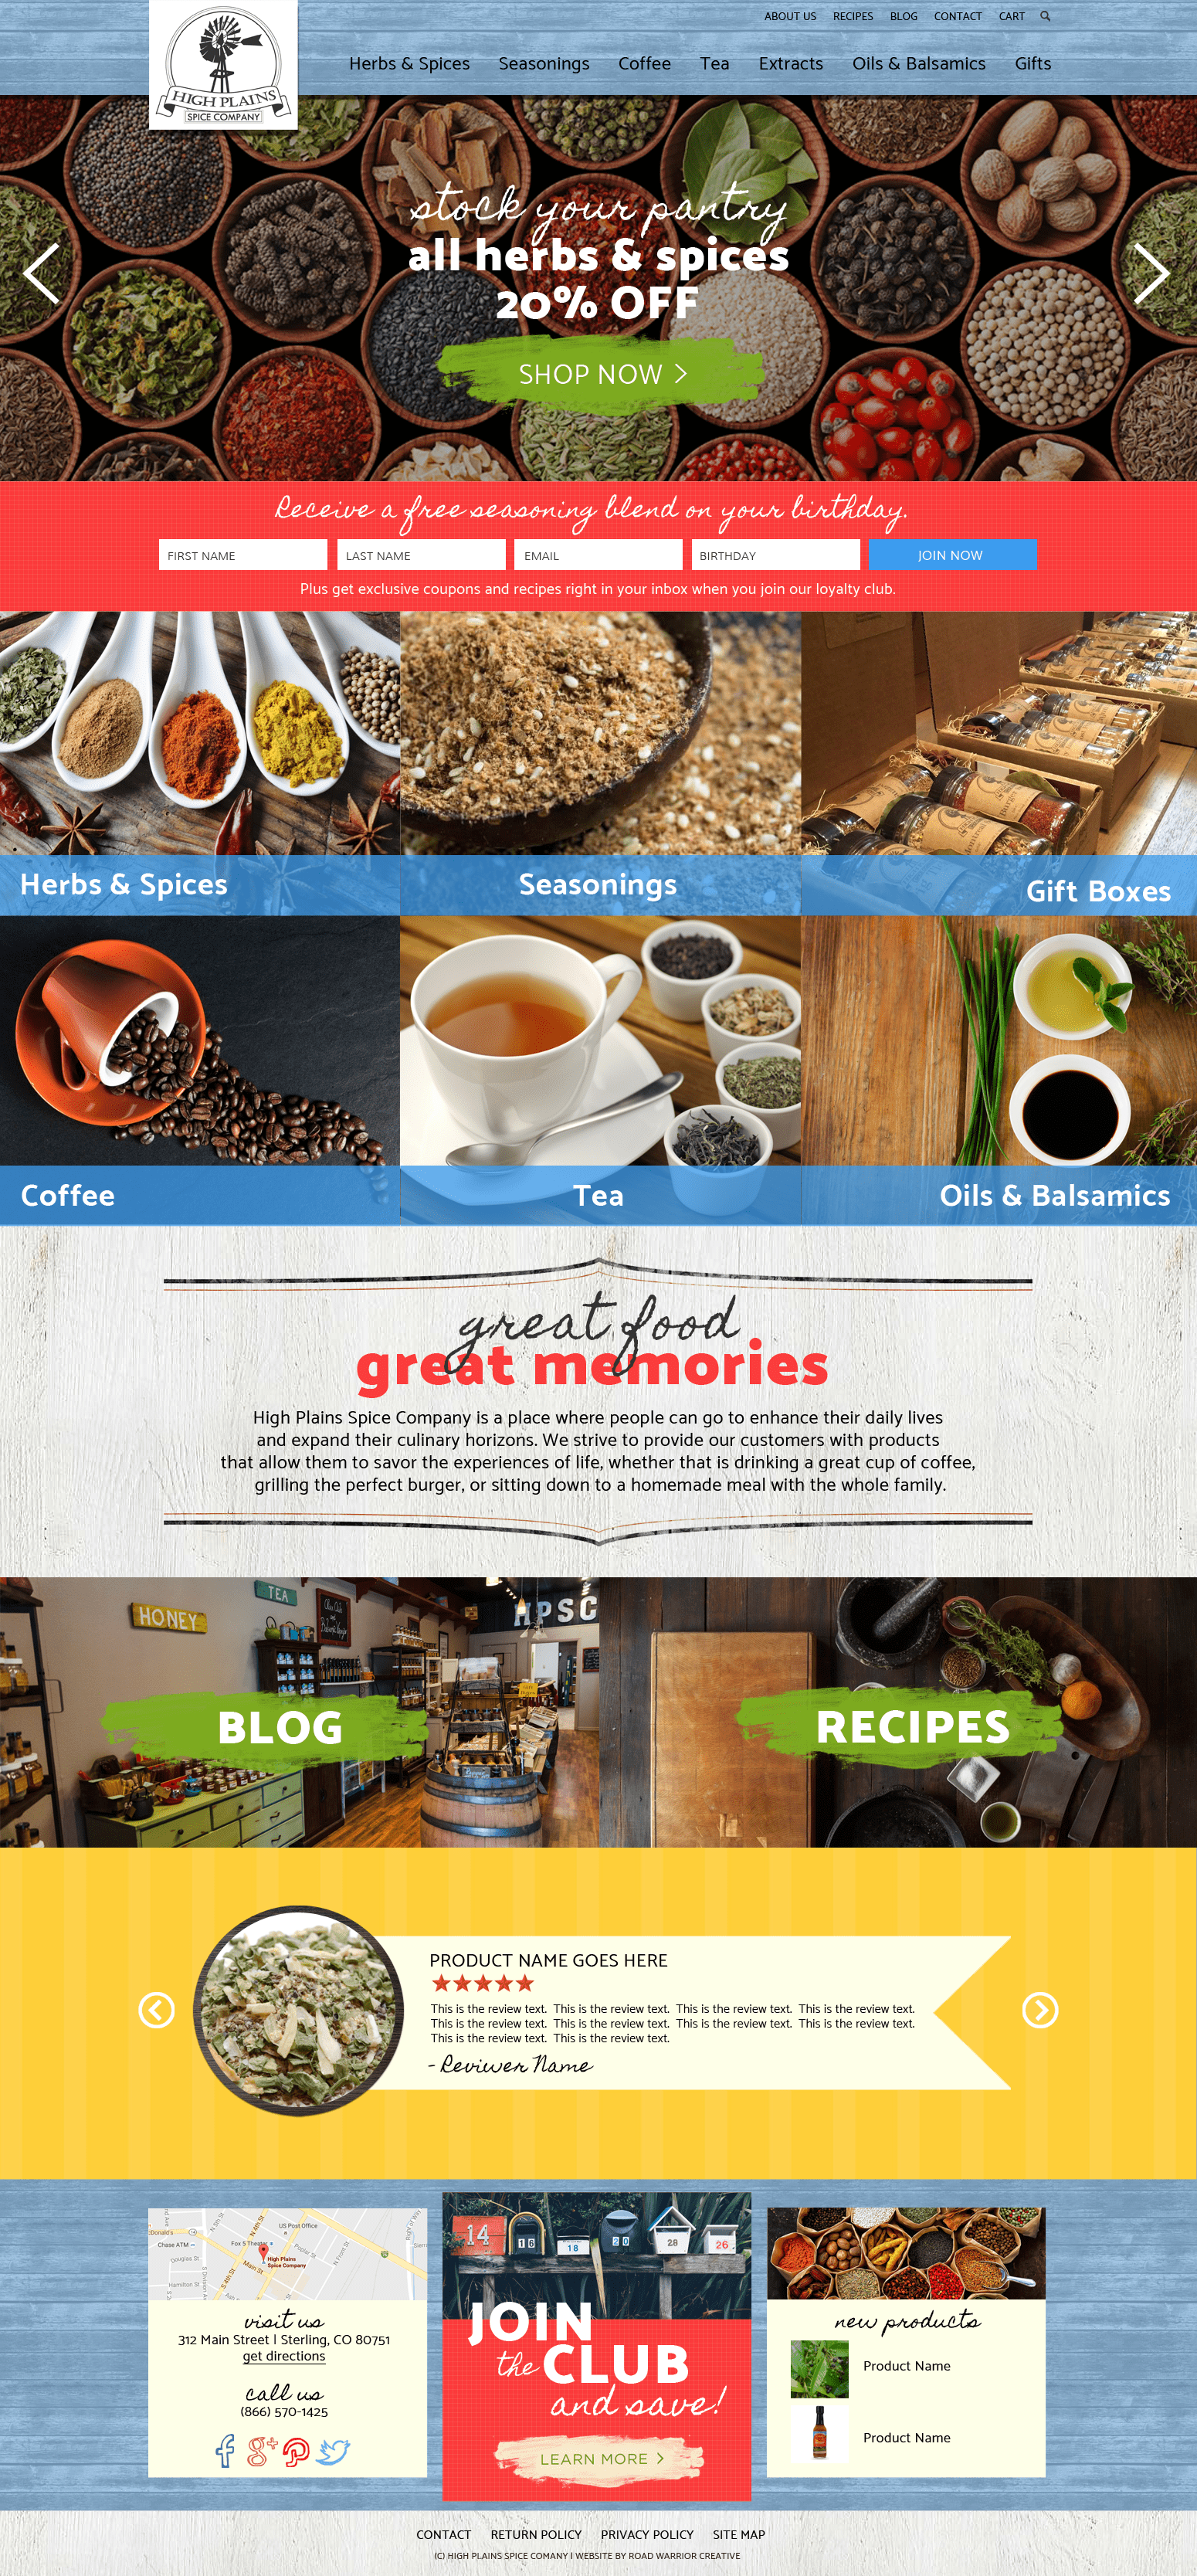 high plains spice company website design 2